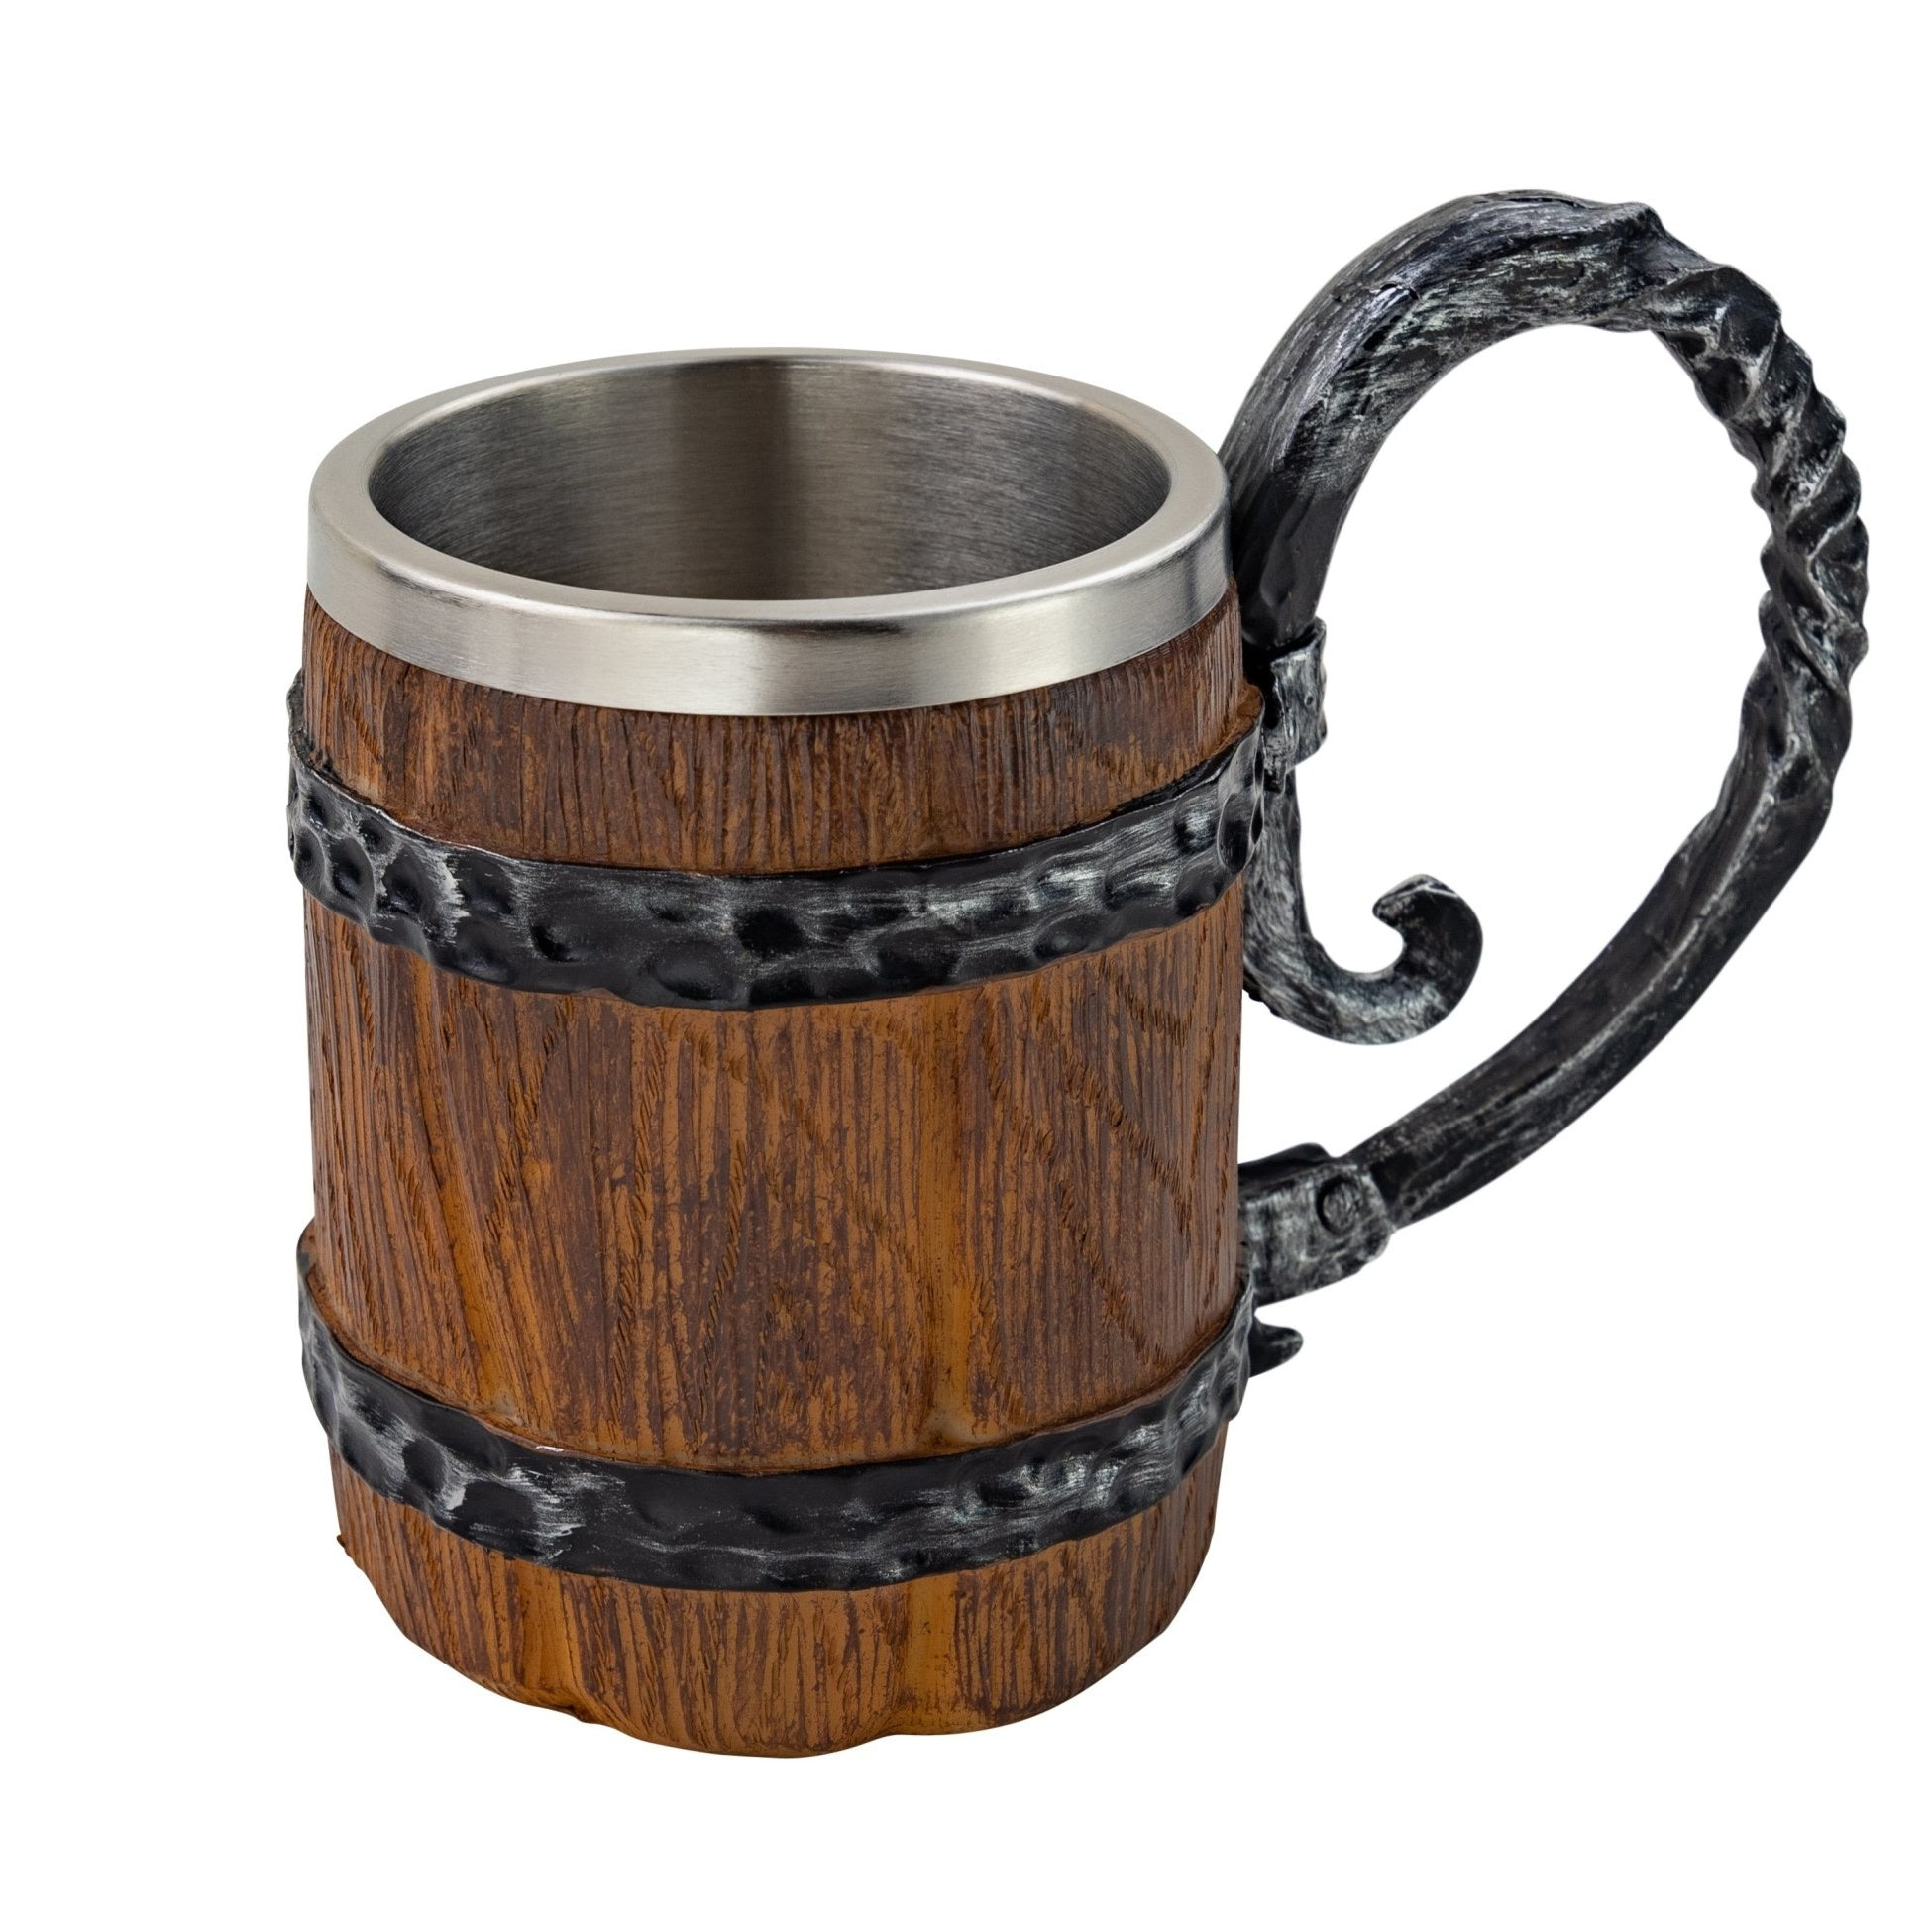 Rustic Wooden Barrel Resin Mug Large Handle Stainless Steel Insert - VikingsBrand